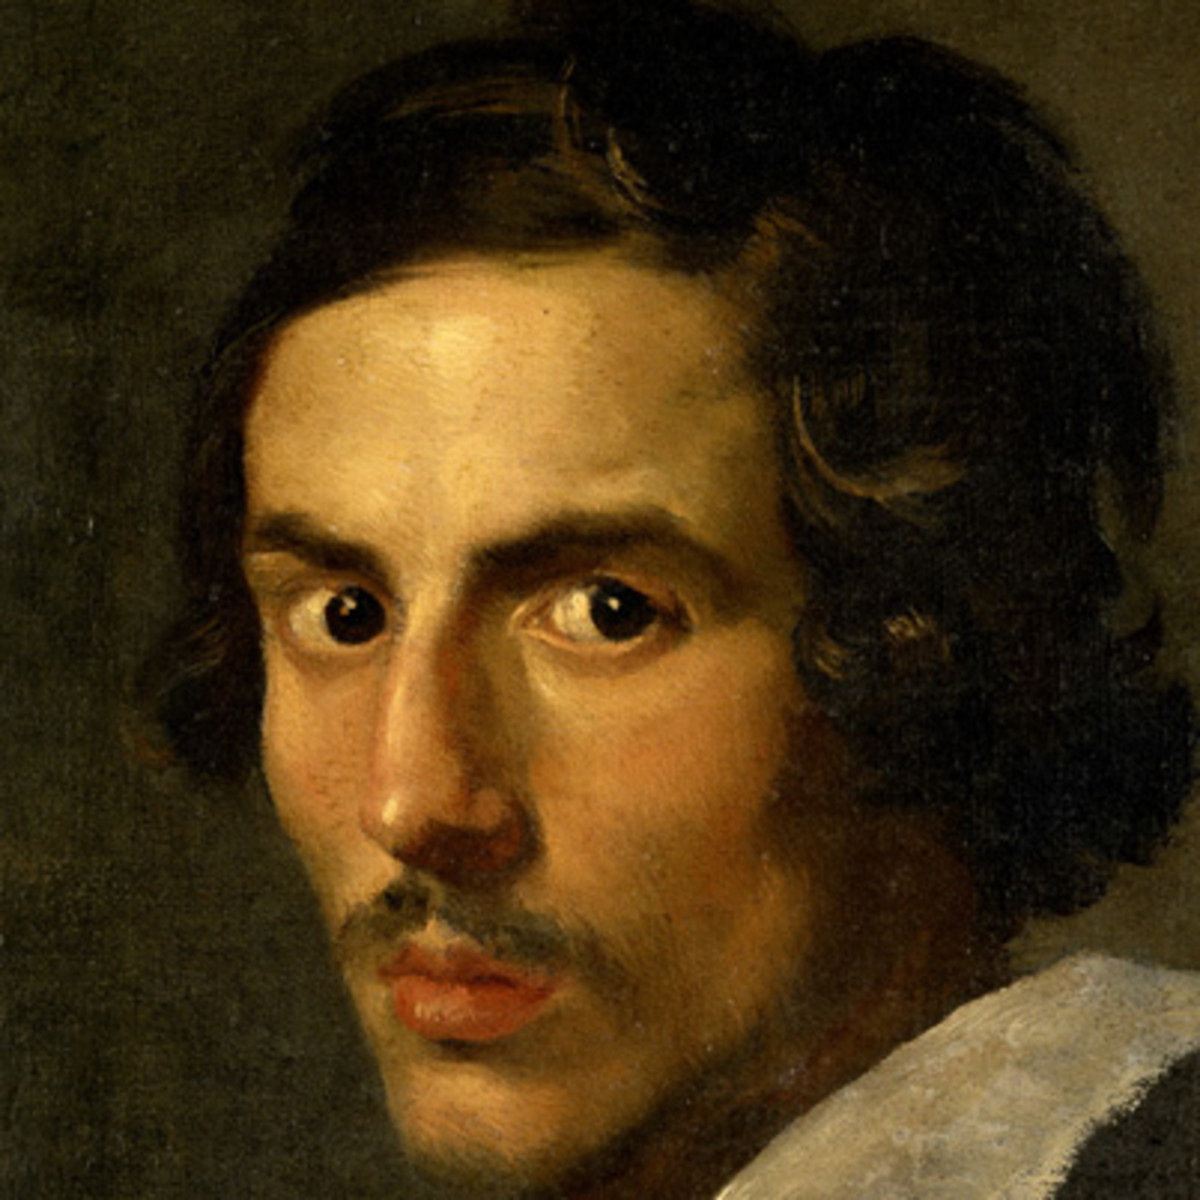 giovanni bernini sculptor architect artist biography